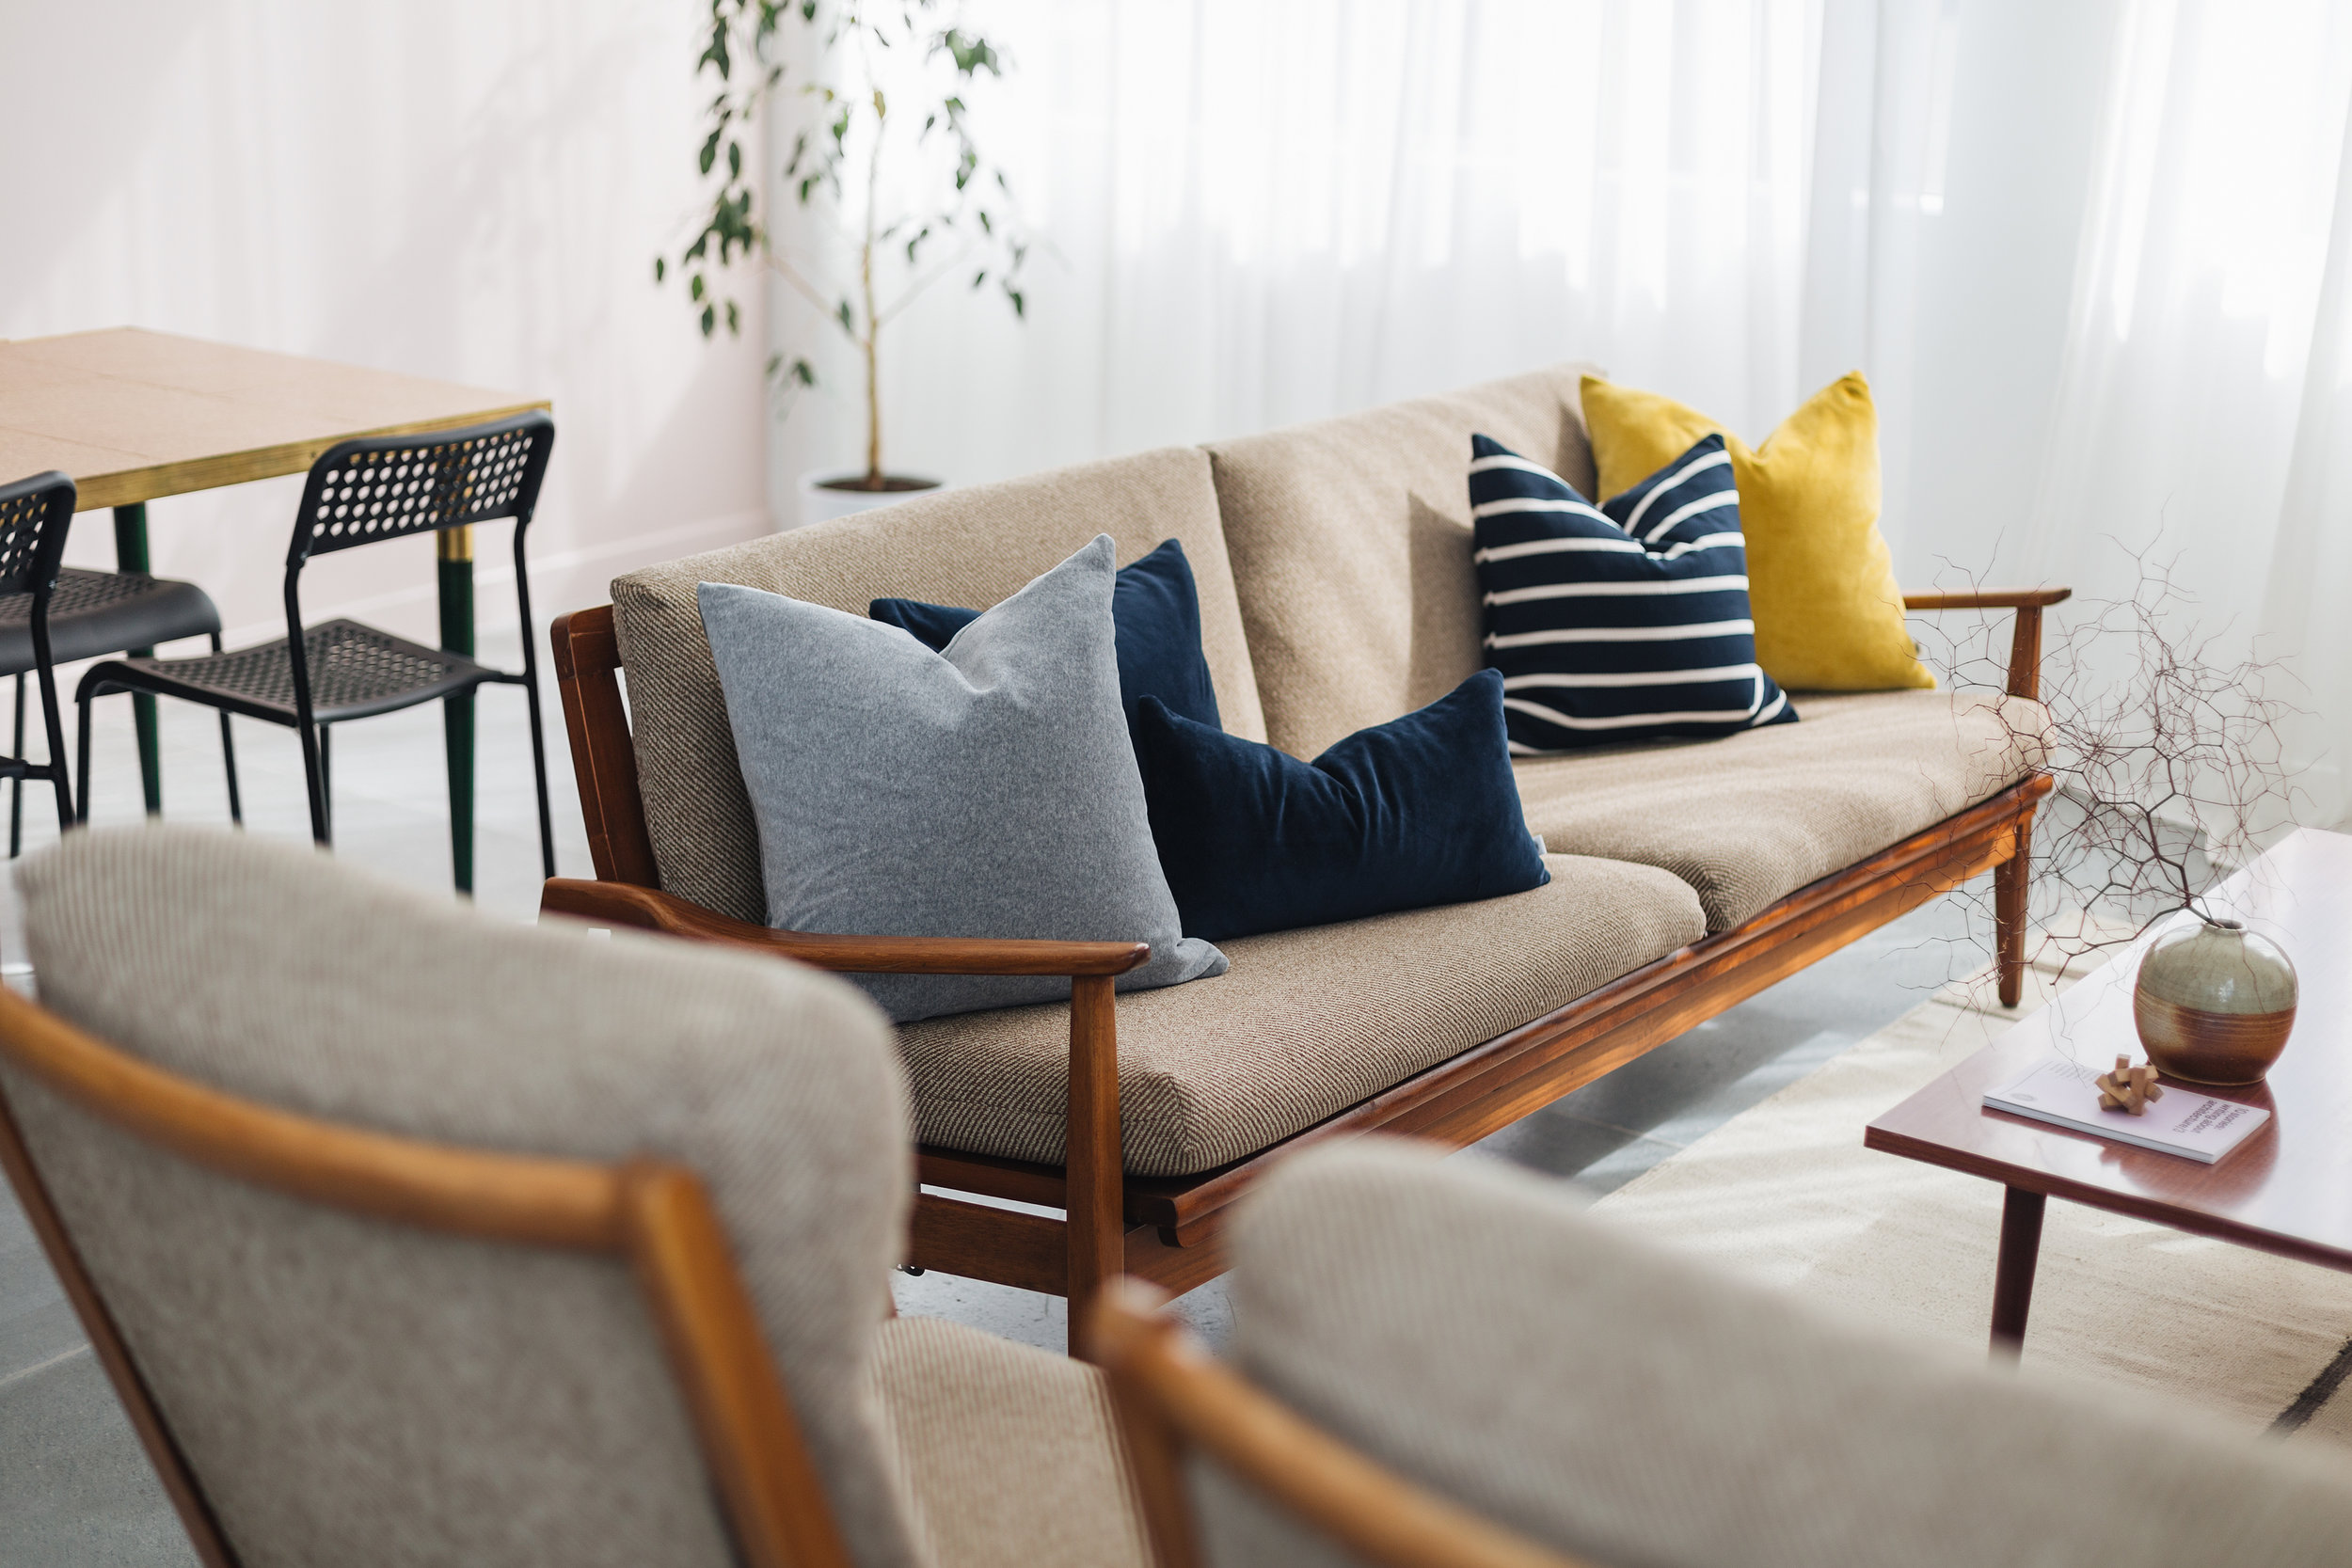 The Ethical Home Edit - sustainable home, eco home, ethical interiors